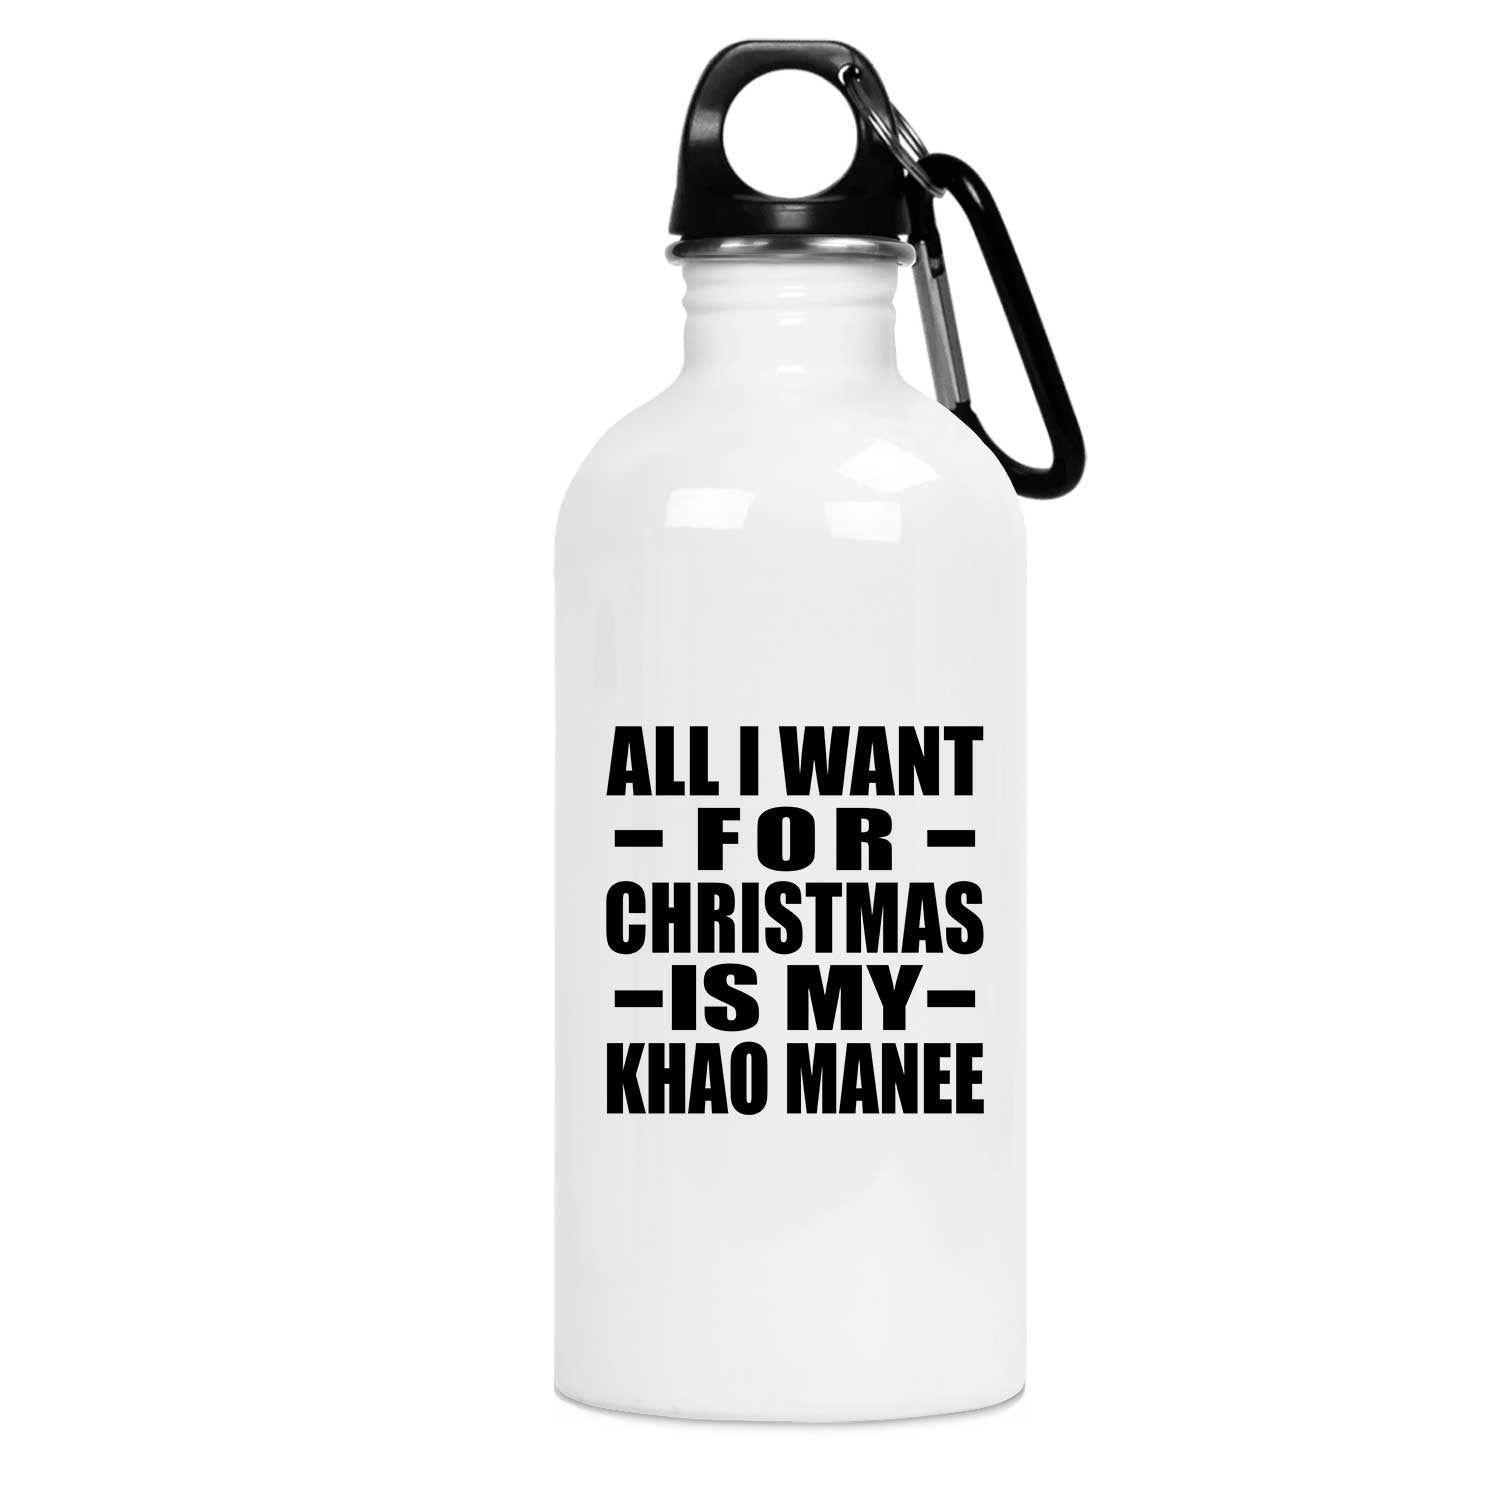 All I Want For Christmas Is My Khao Manee - Water Bottle